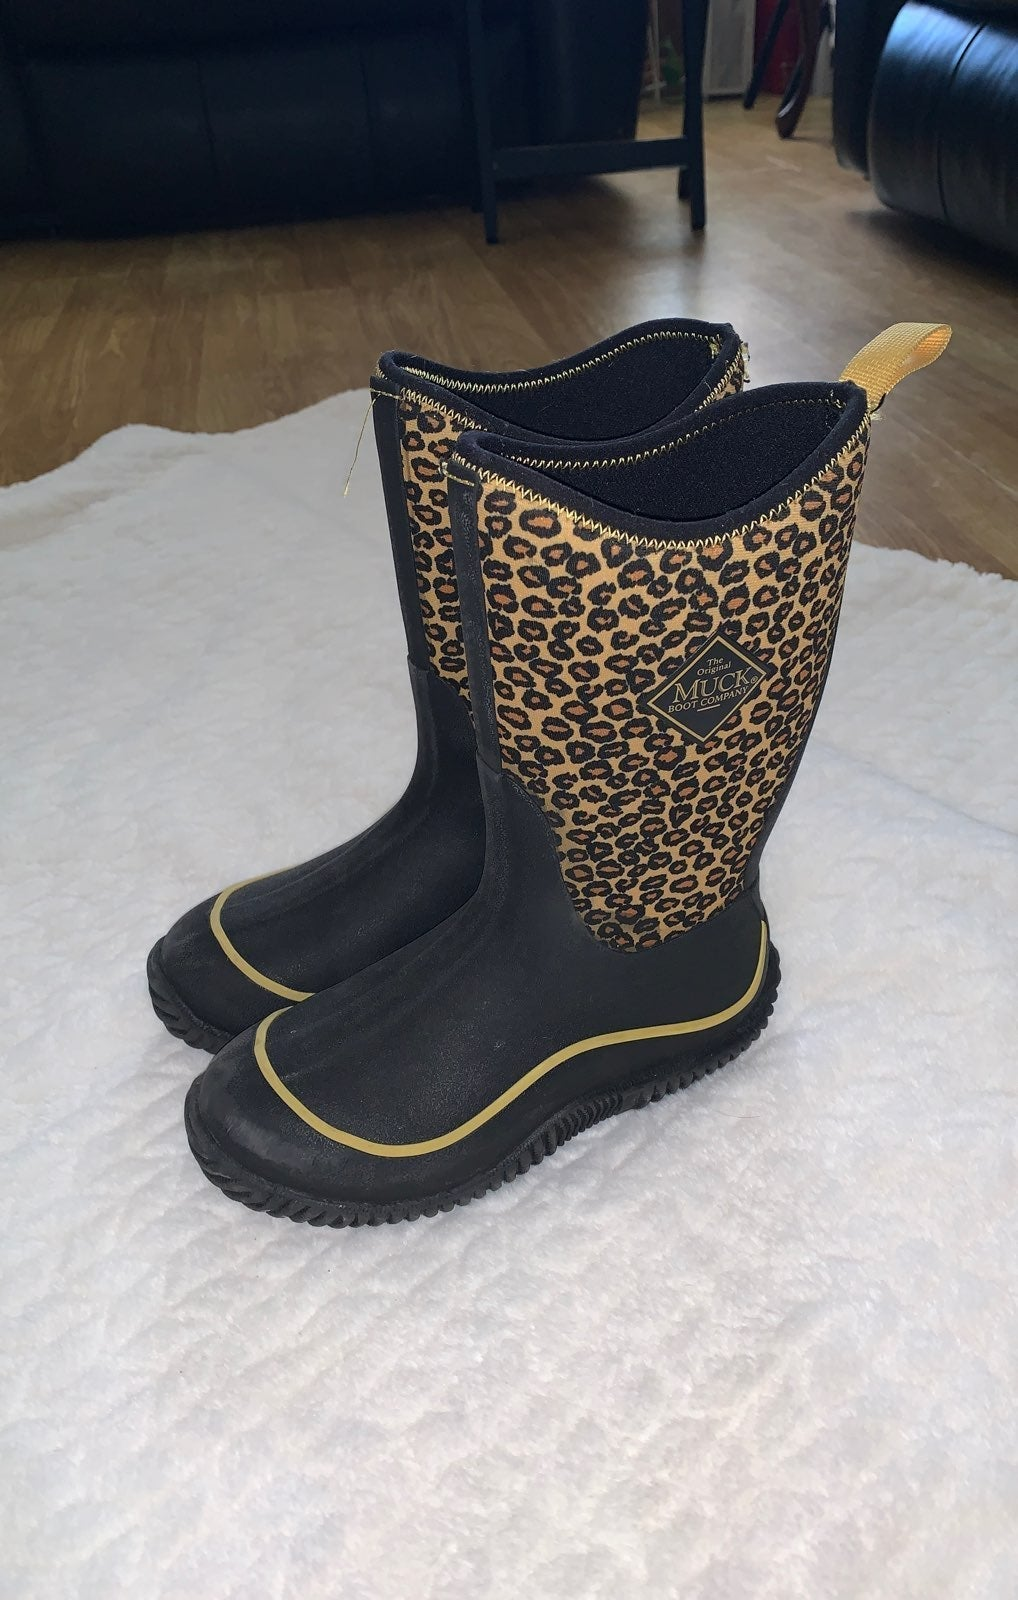 The Original Muck Boot Company Shoes